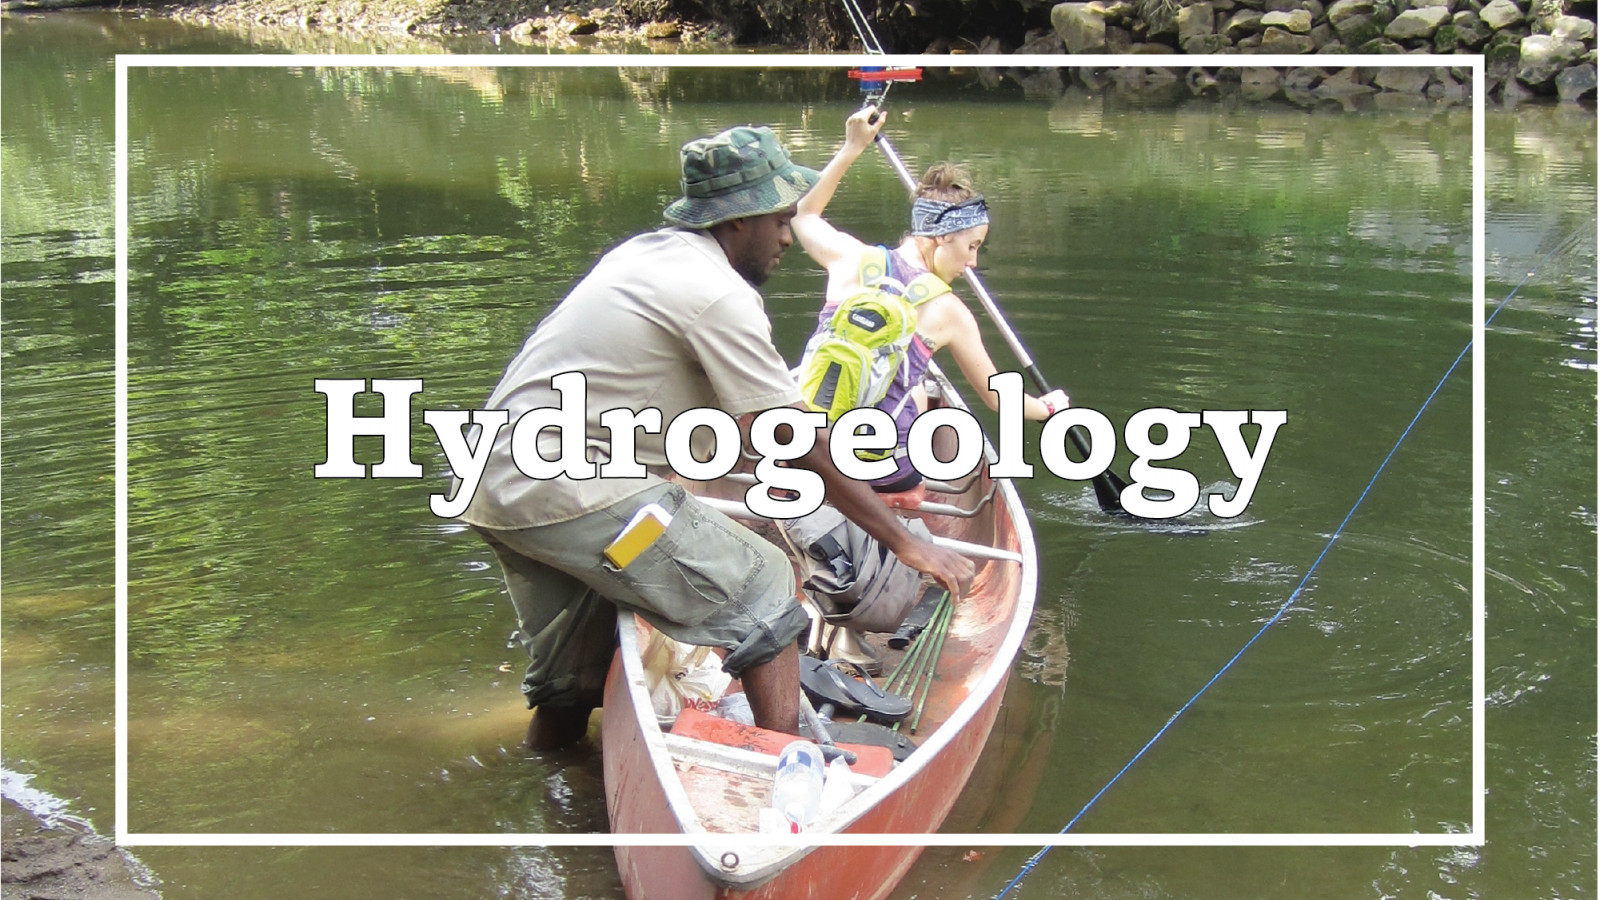 "Two students from SES work to collect river water samples from a canoe. Overlain text reads ""Hydrogeology""."